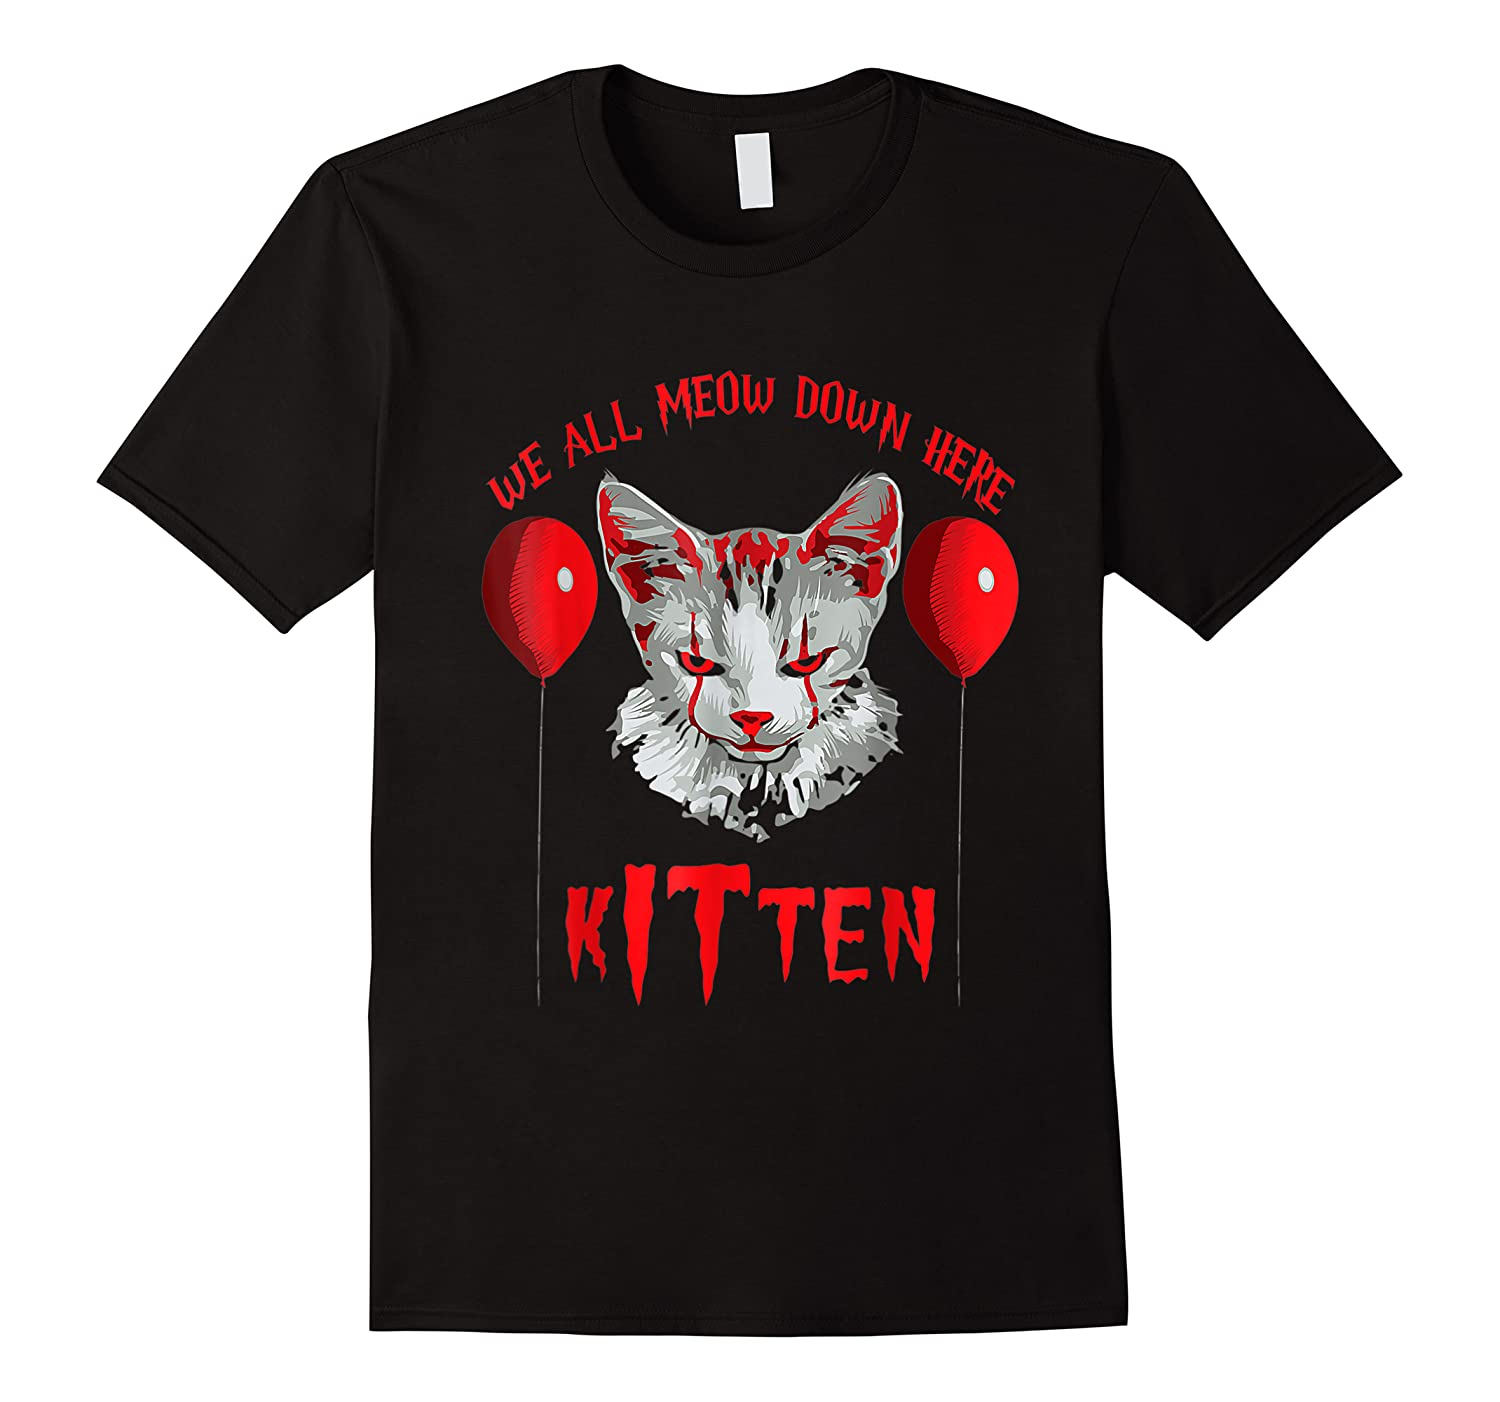 We All Meow Down Here Kitten Halloween Scary Cat T-shirt